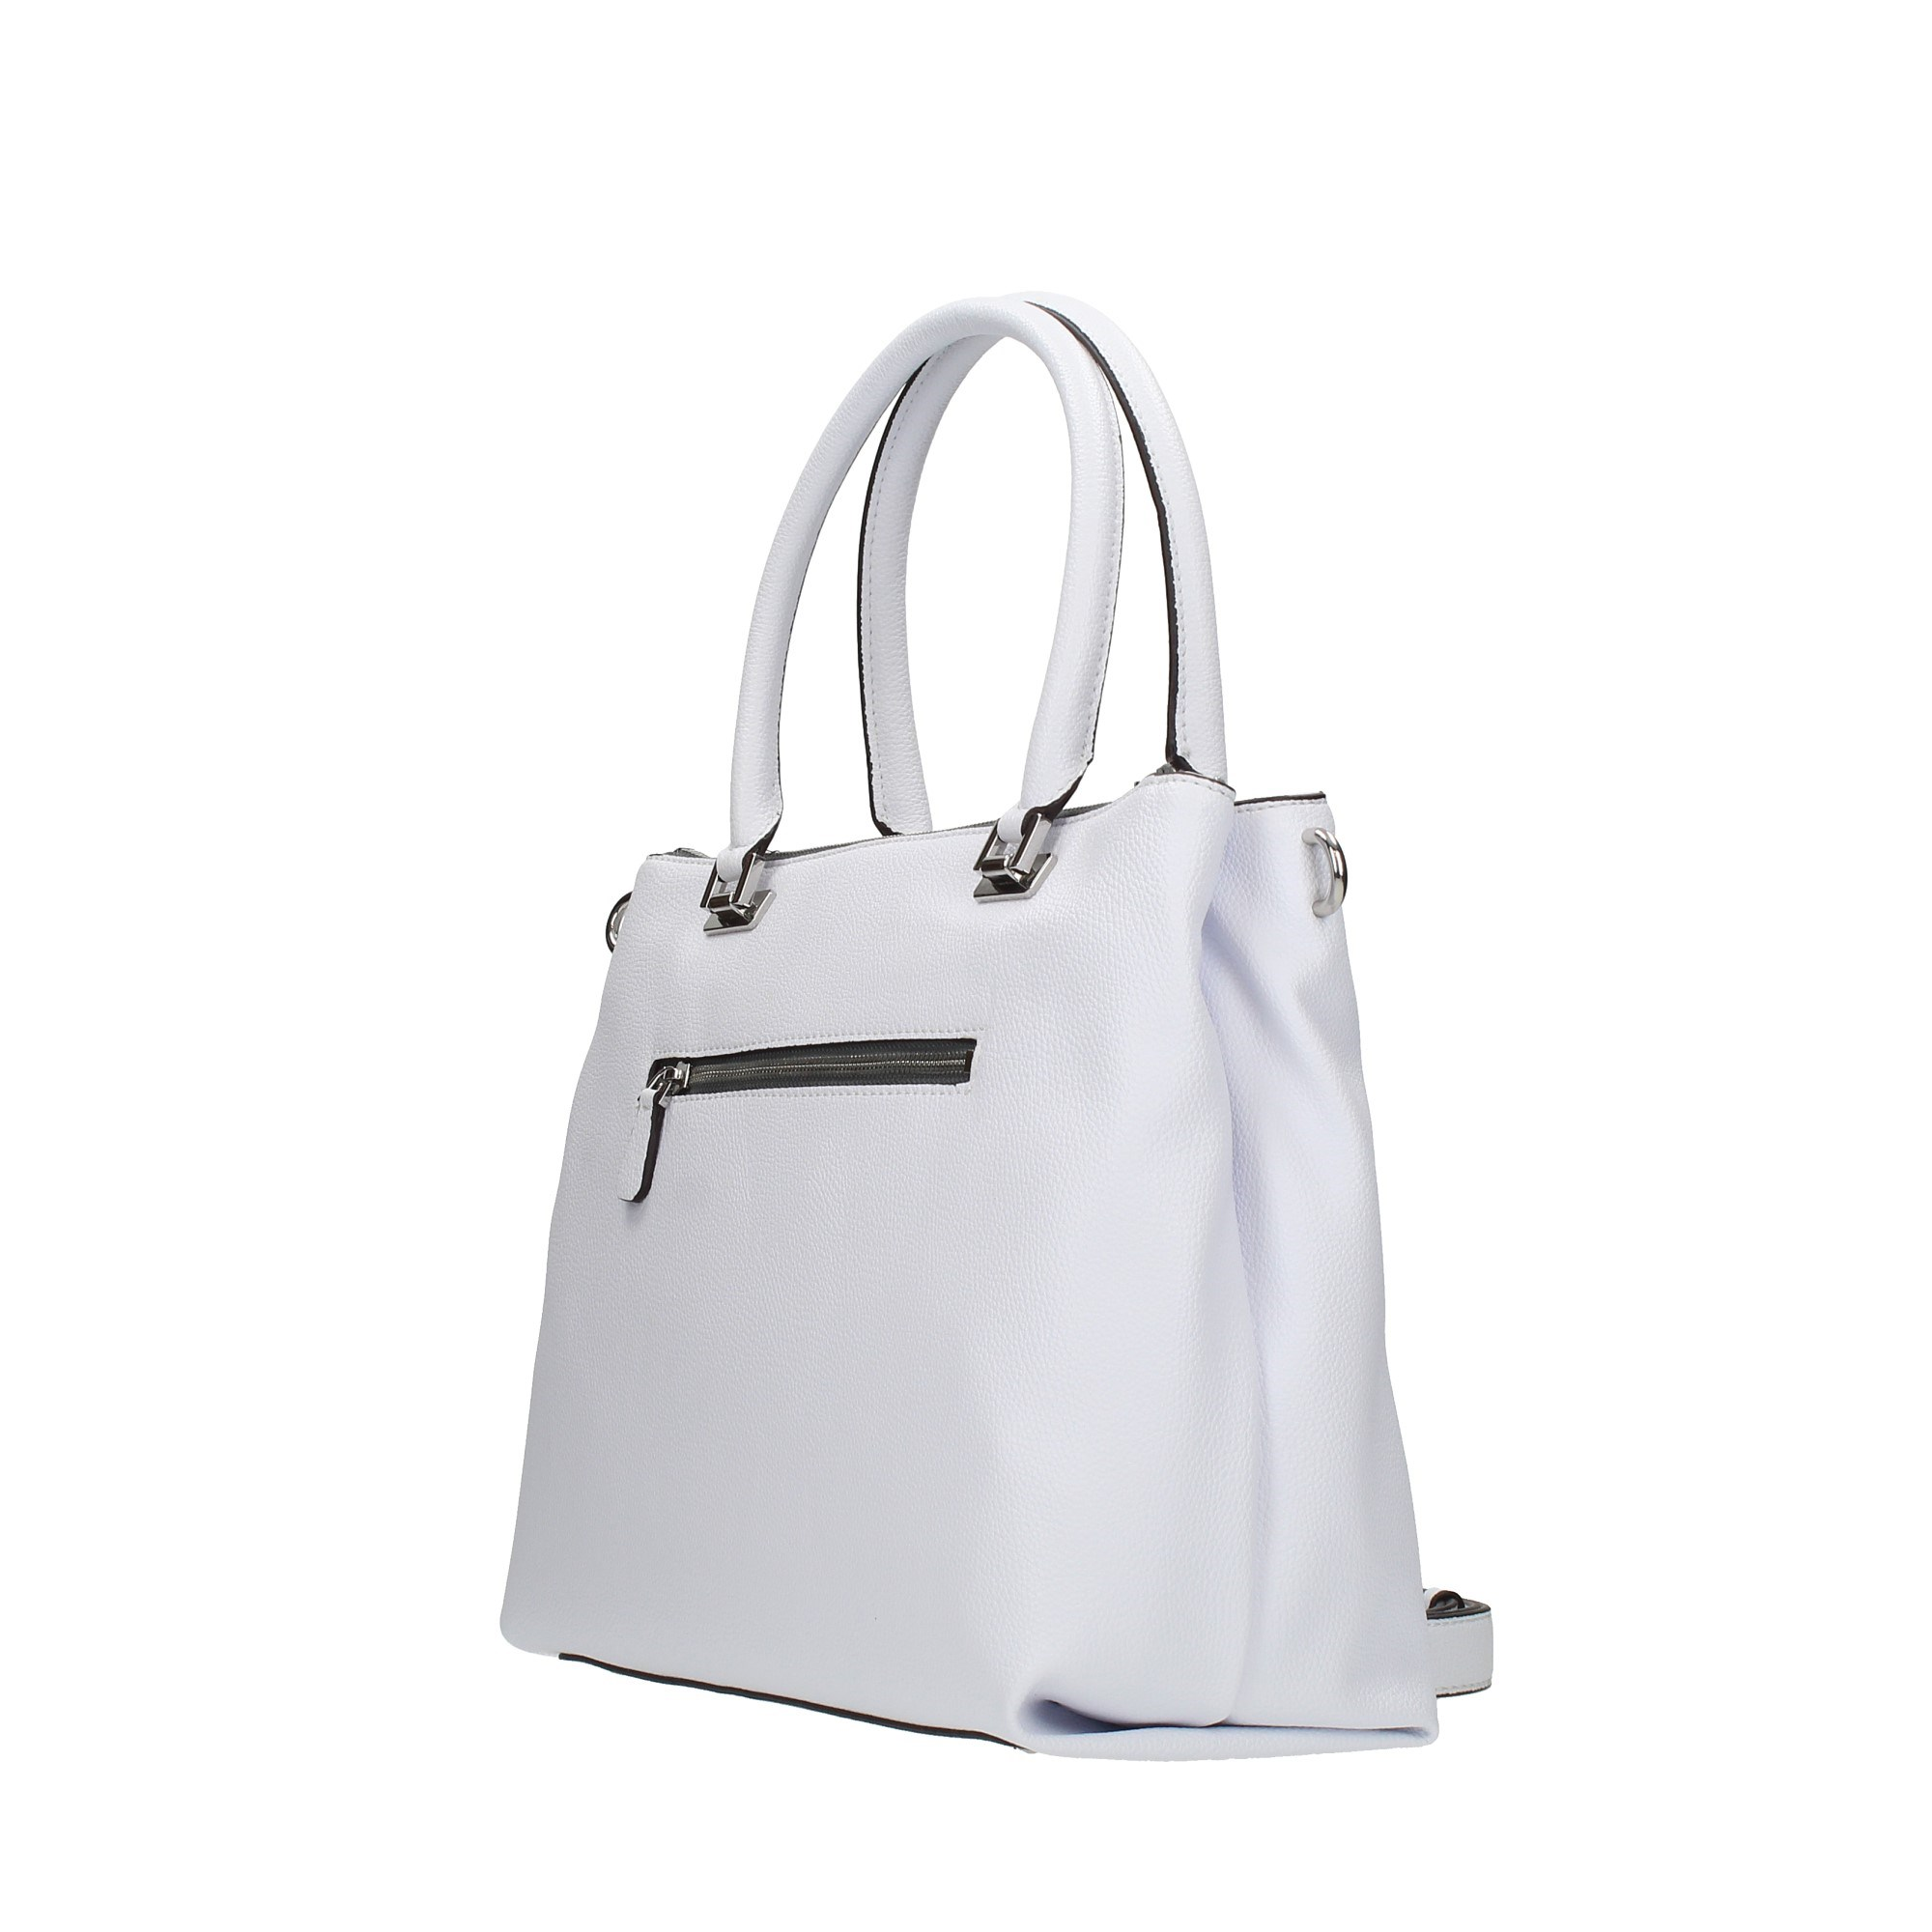 Guess Borse Accessories Women Shoulder Bags White HWVY78/78100